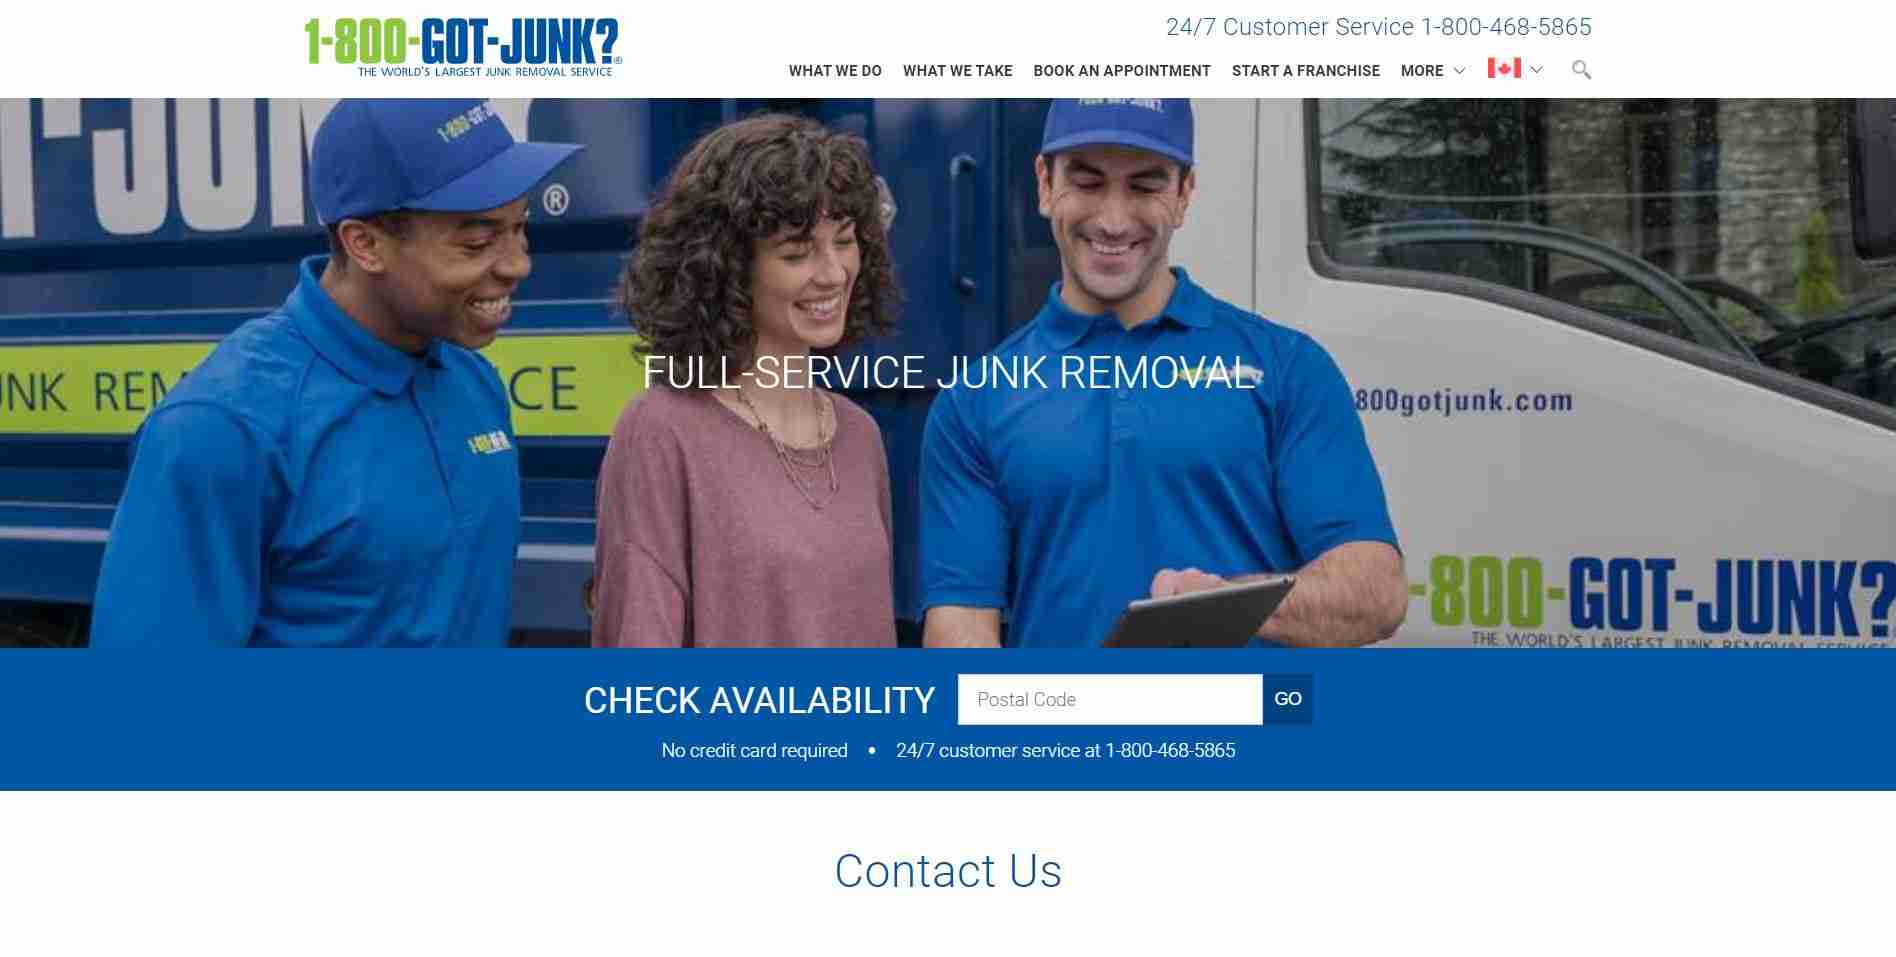 1-800-Got-Junk's? Contact Us Page